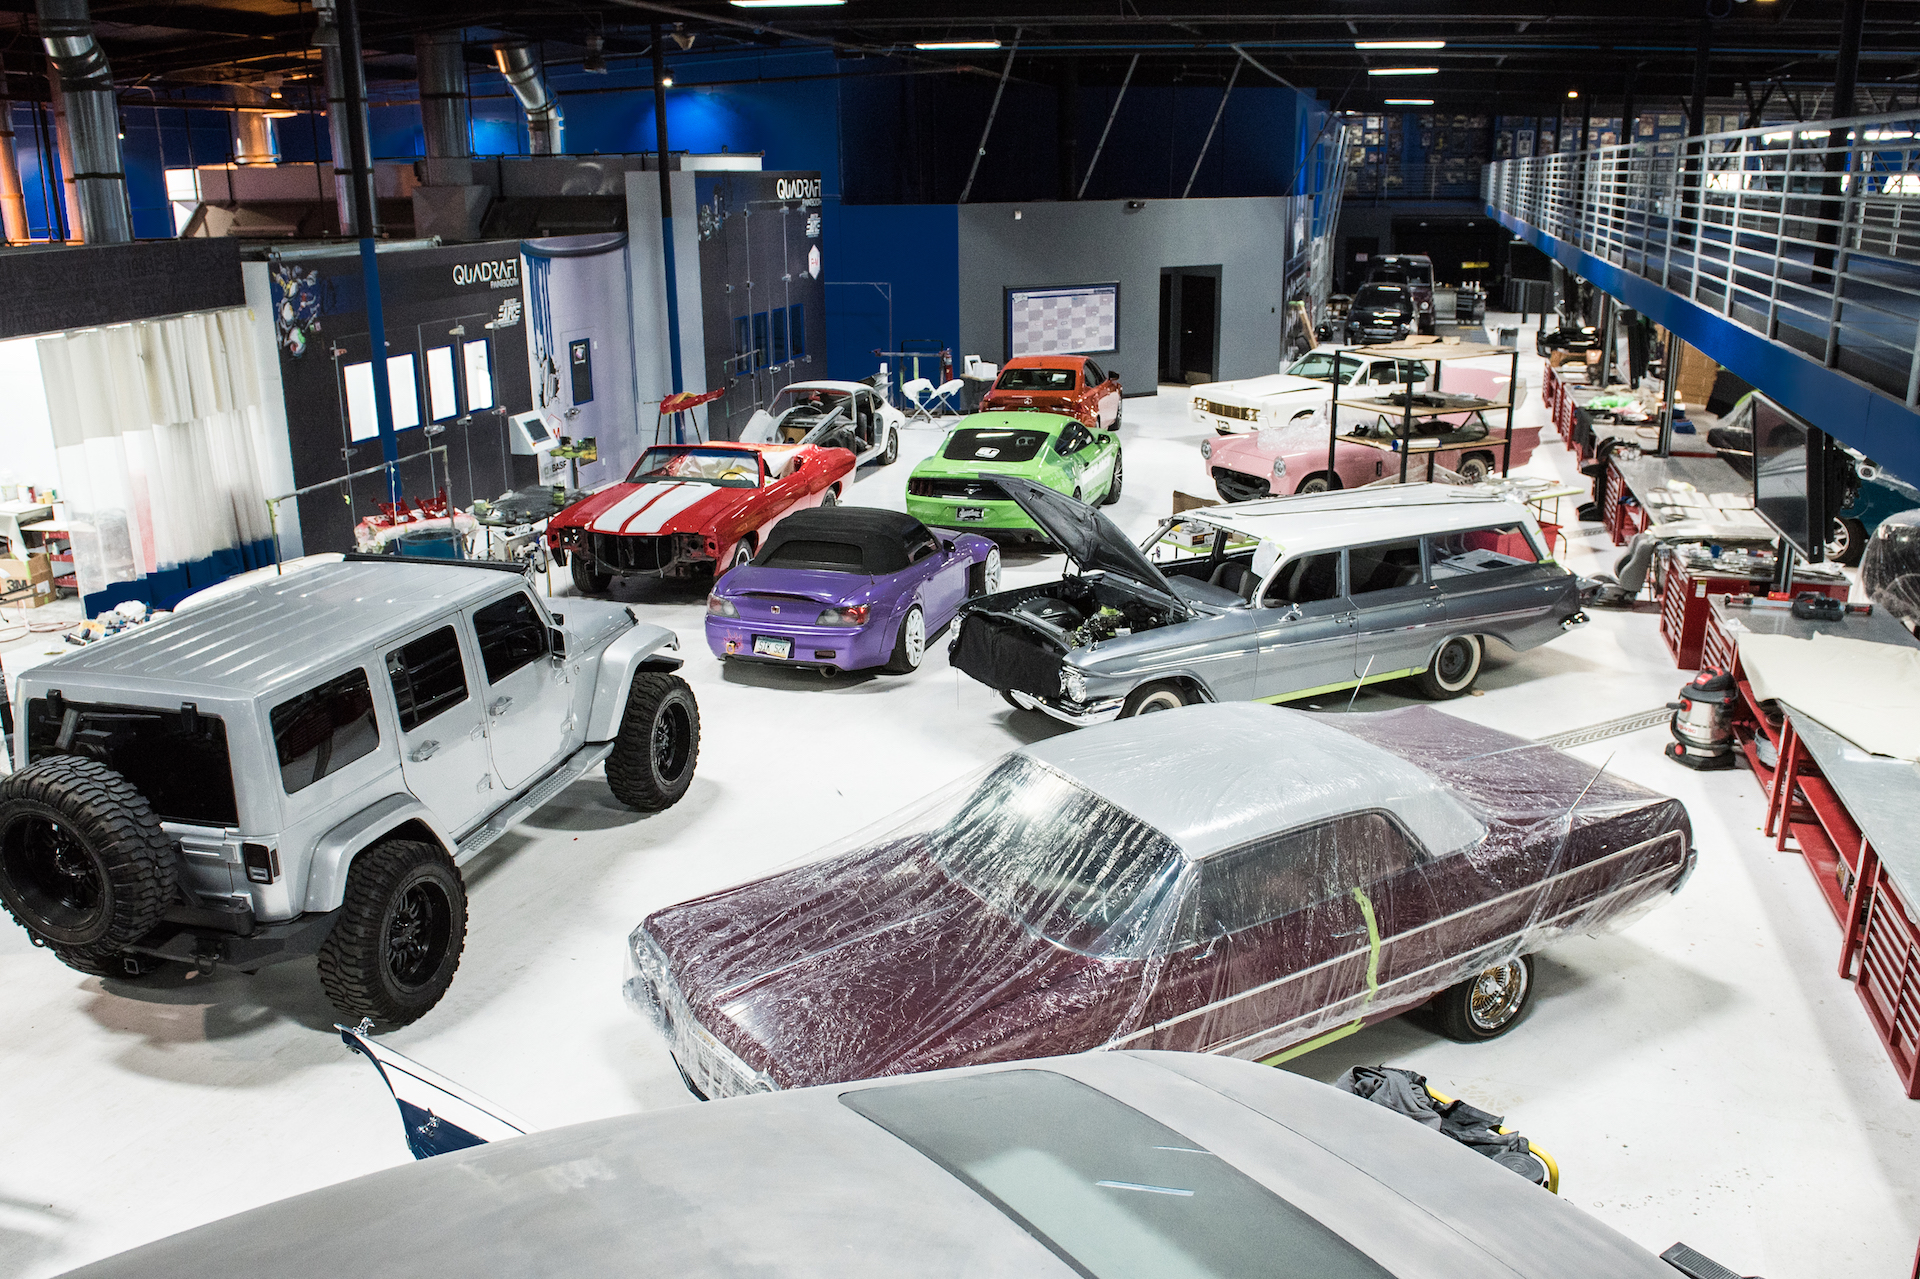 Inside the West Coast Customs garage.